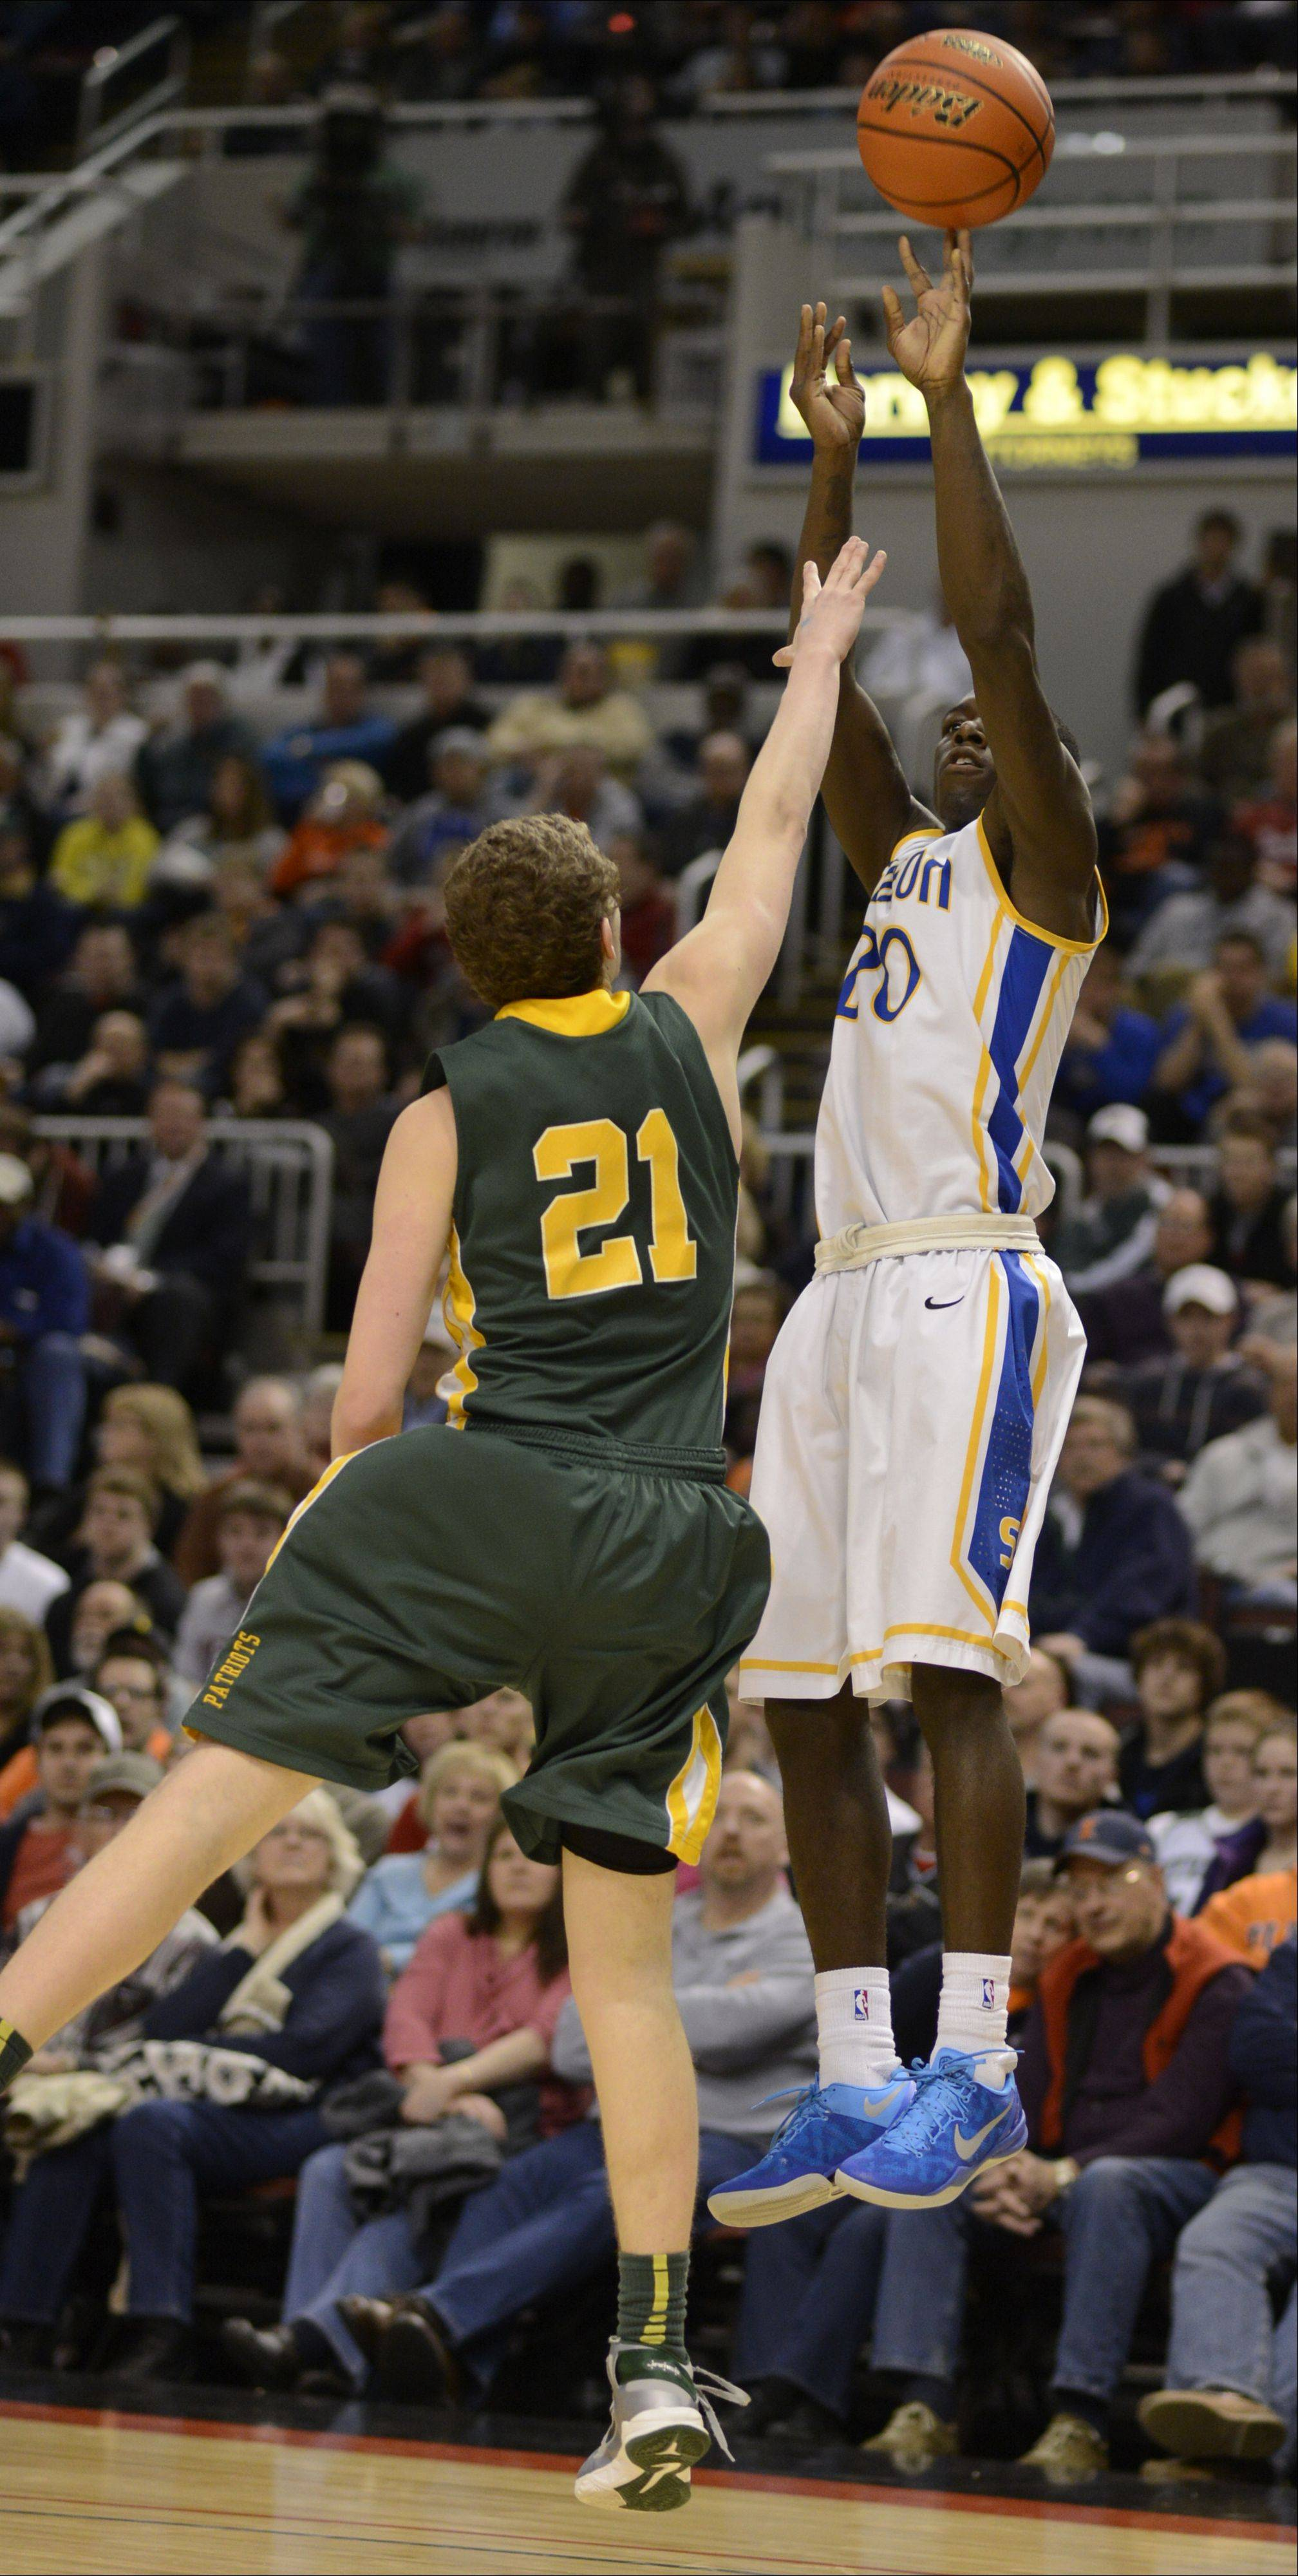 Images from the boys Class 4A state championship game between Stevenson and Simeon Saturday, March 16, 2013 in Peoria.